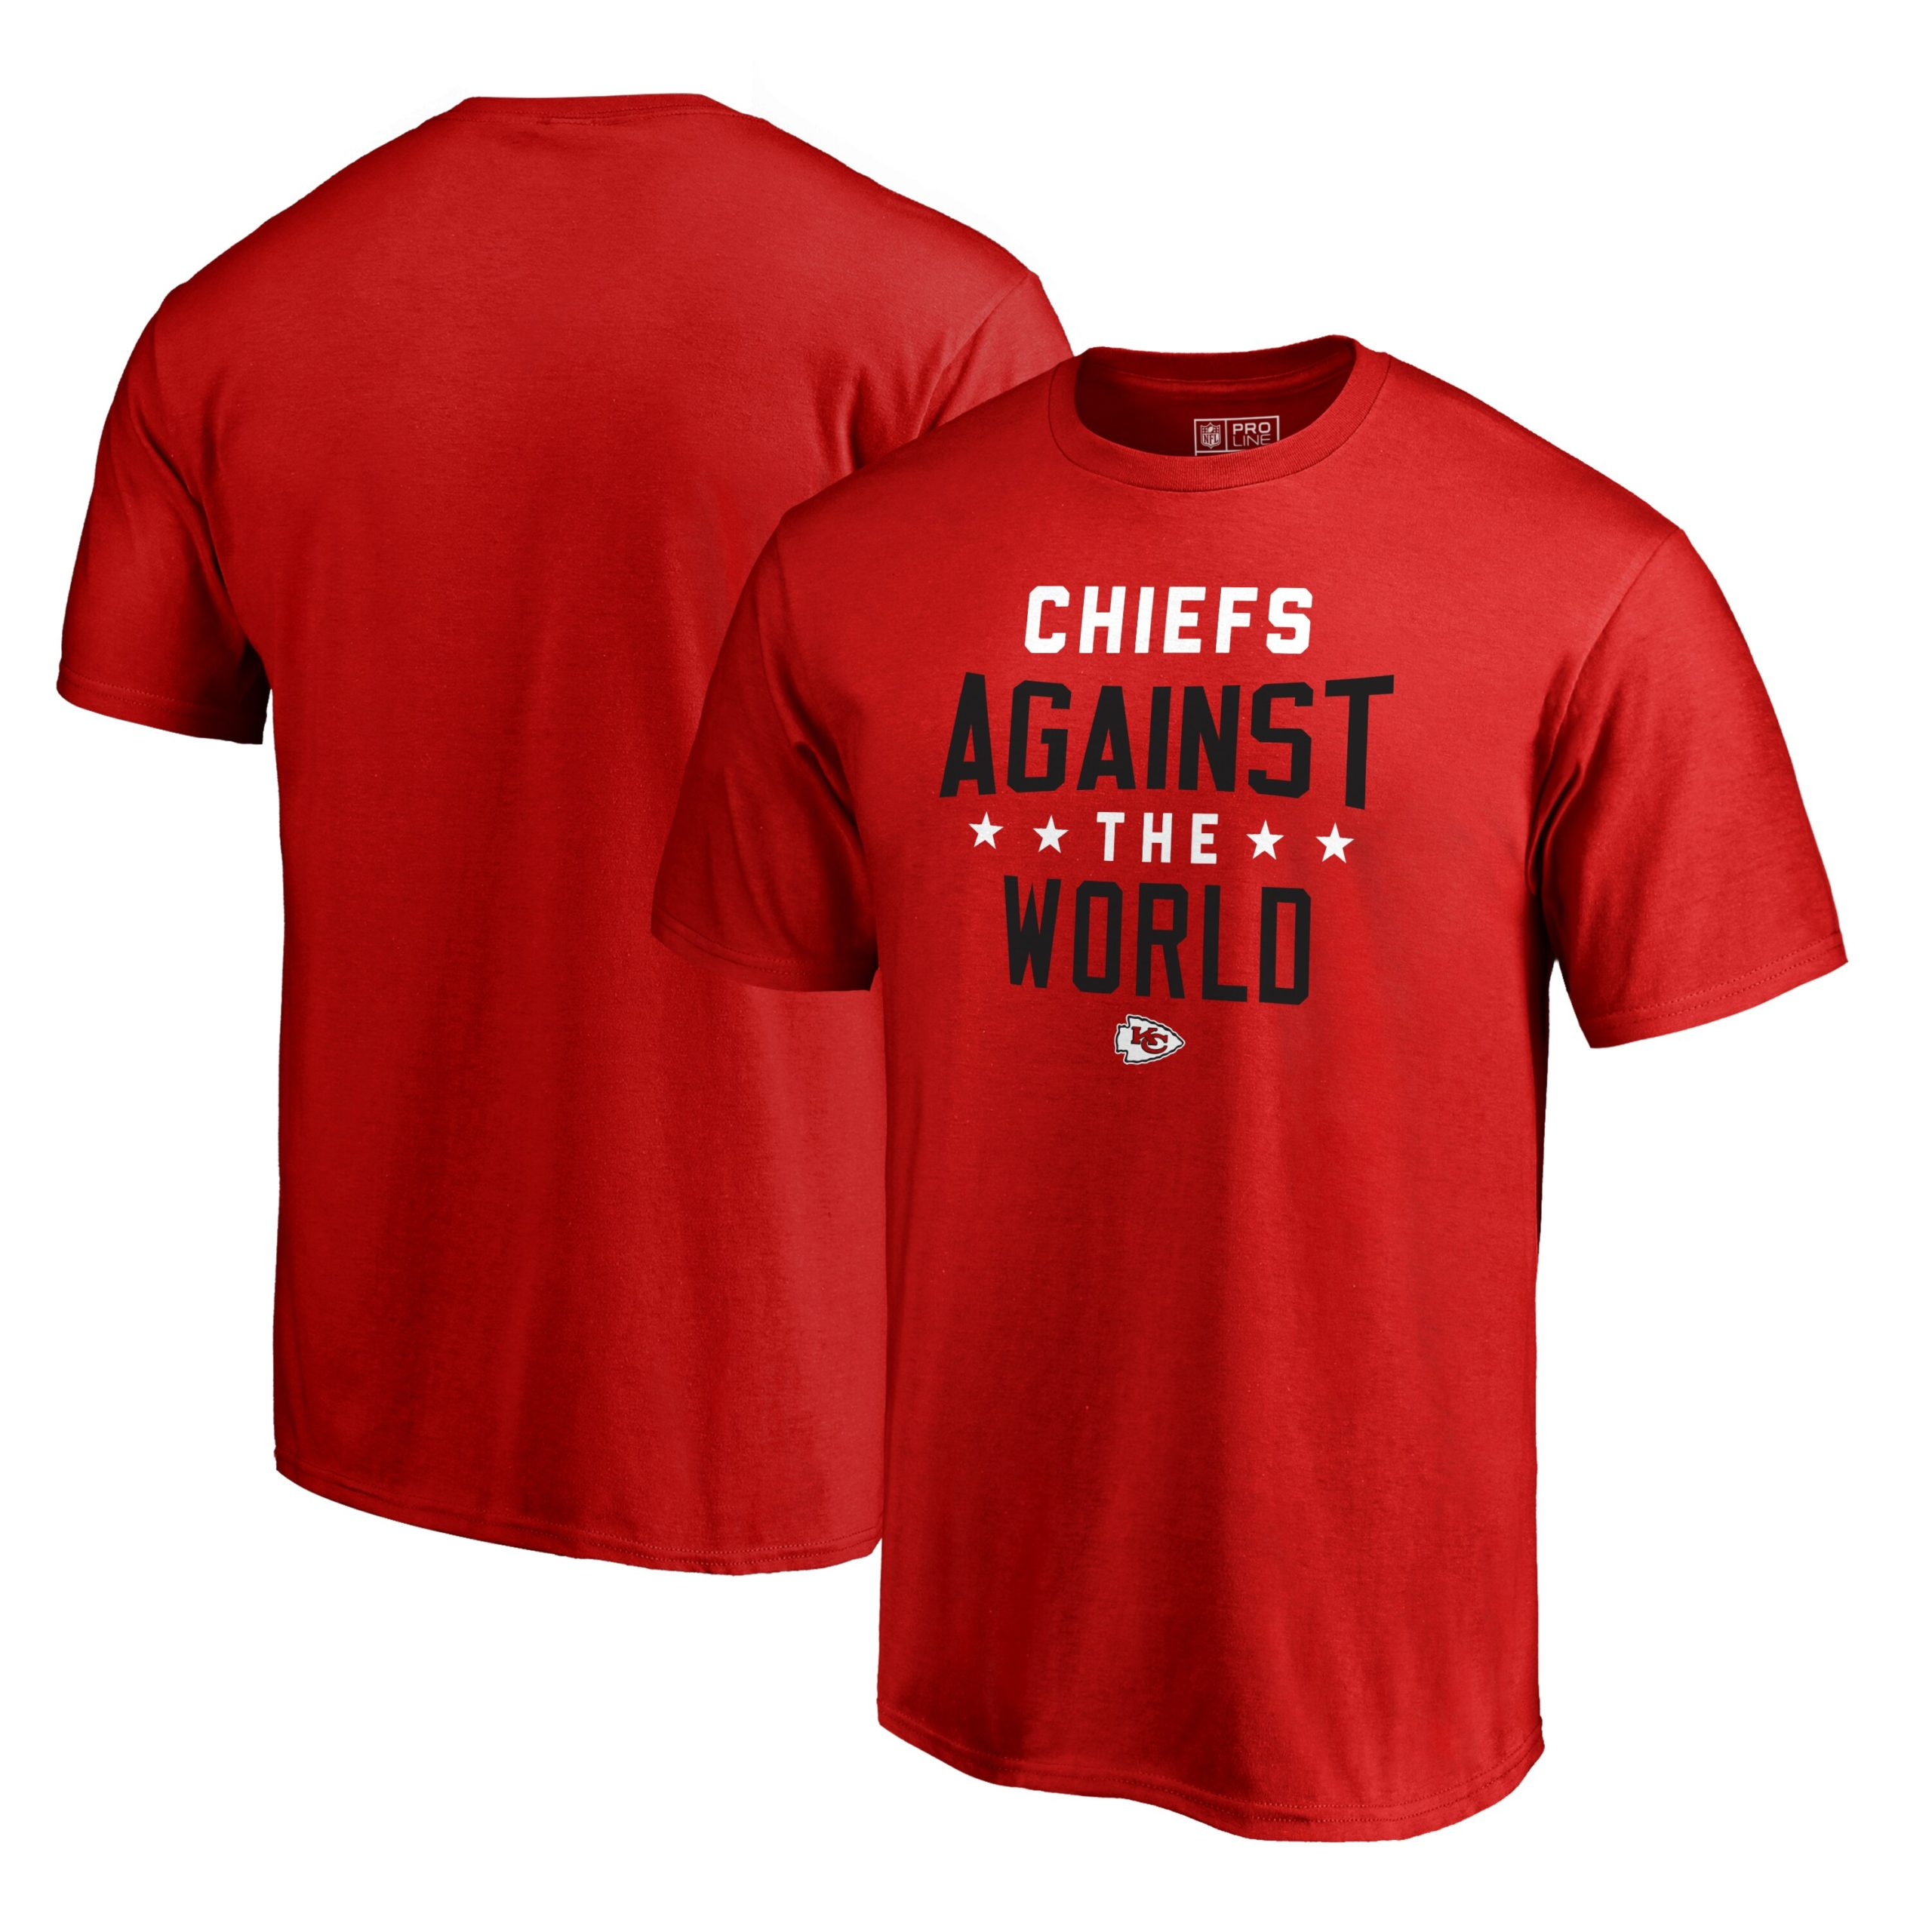 Kansas City Chiefs NFL Pro Line by Fanatics Branded Against The World T-Shirt - Red